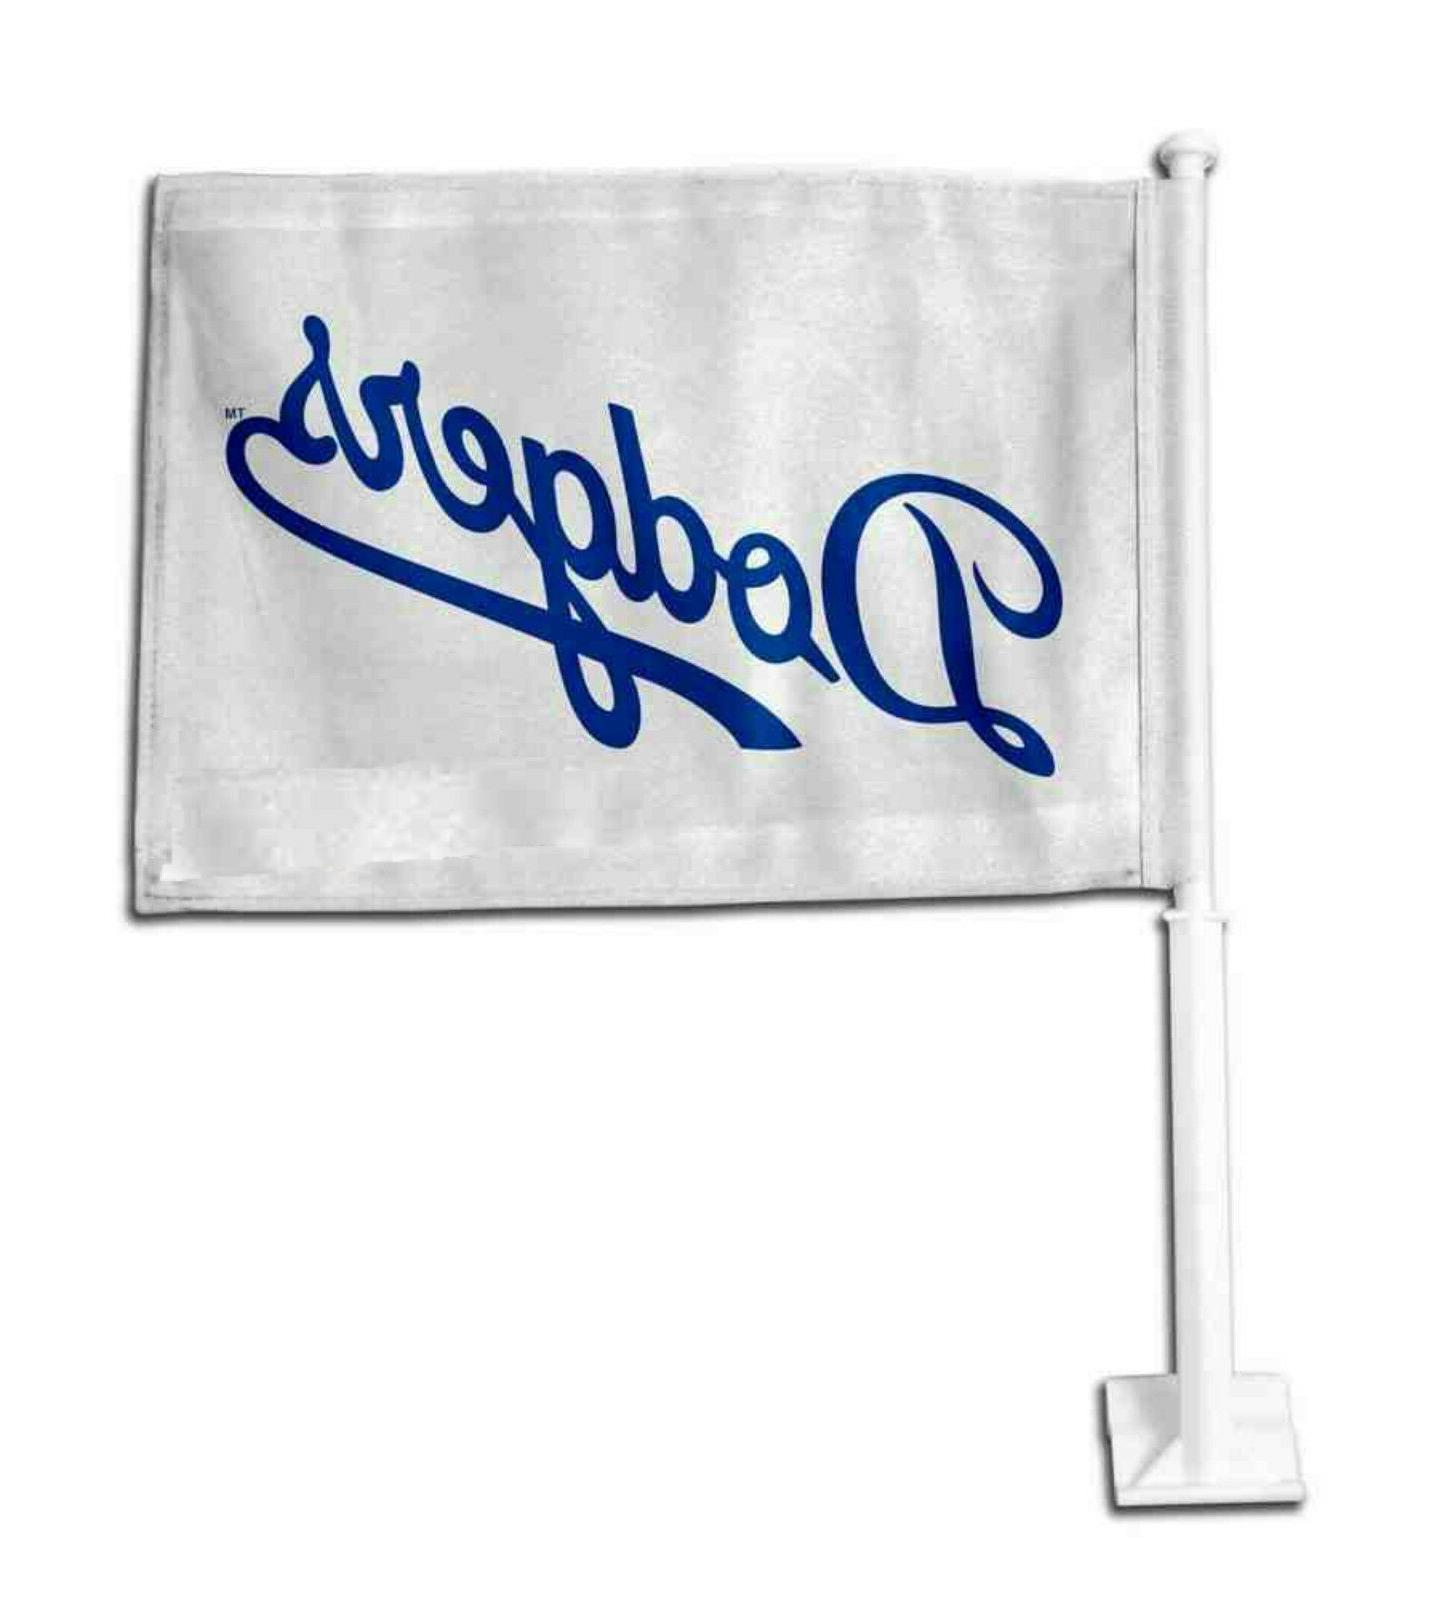 los angeles dodgers white car flag double